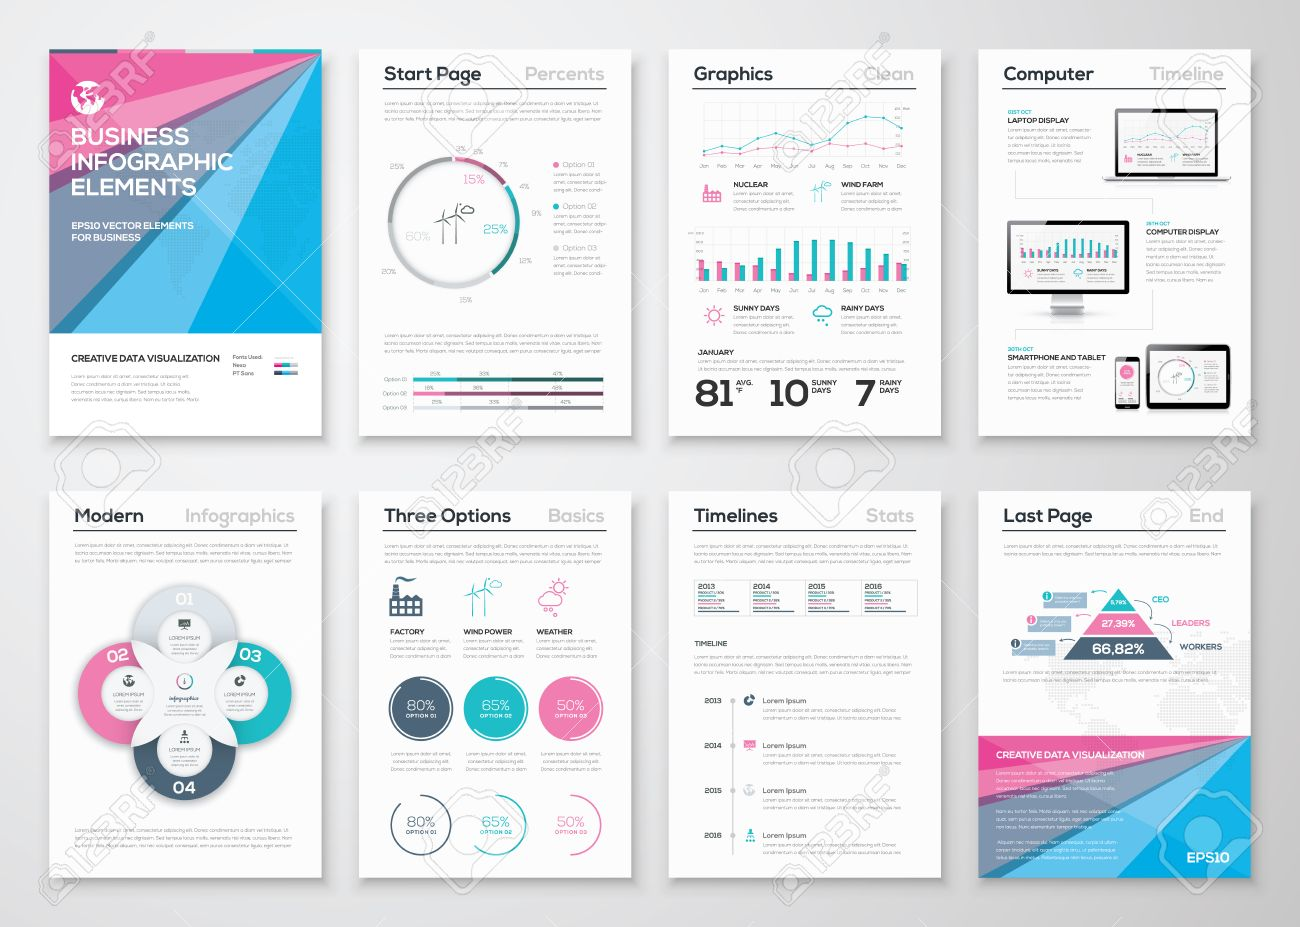 Infographic Business Brochure Templates For Data Visualization - Infographic brochure template